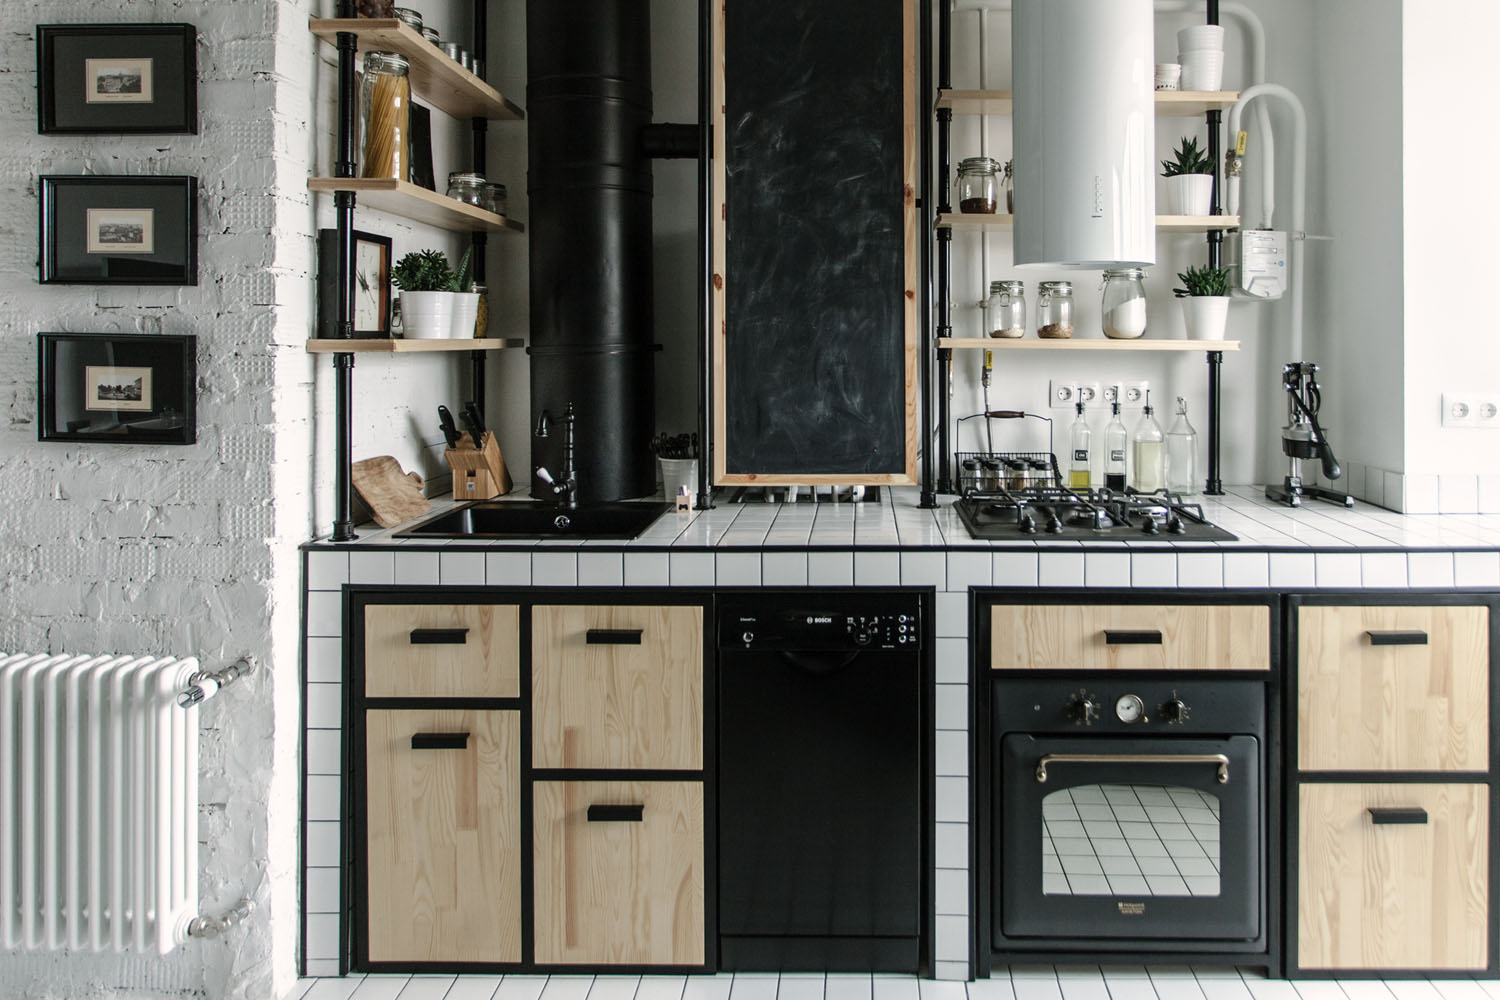 Black and White Kitchen with Wood Cabinets